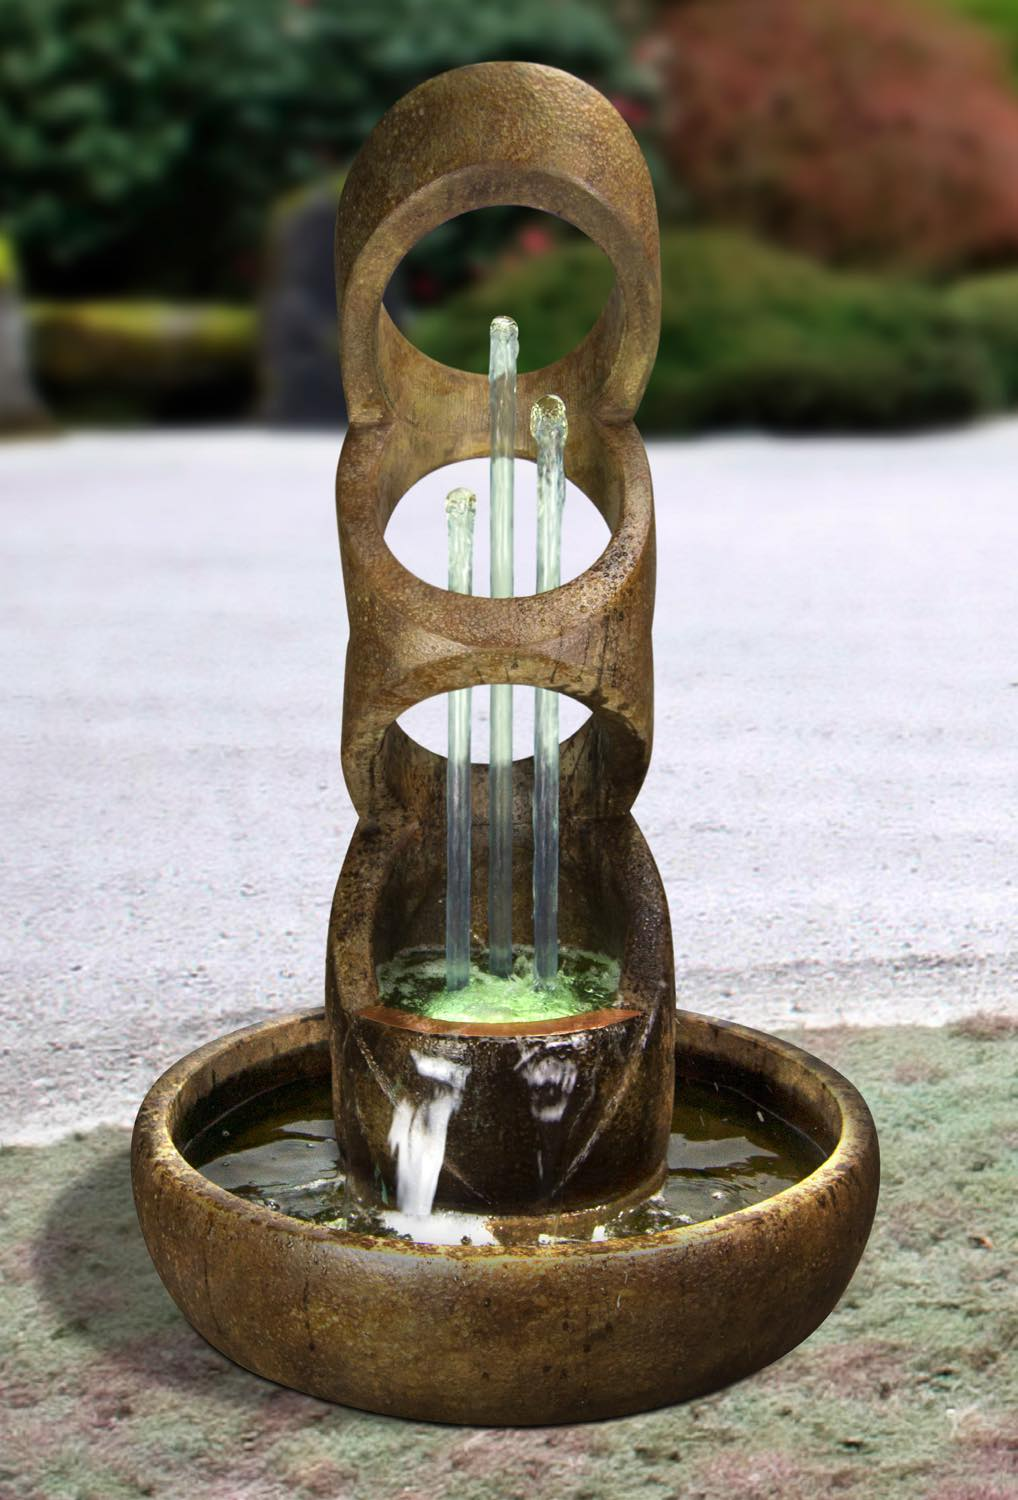 Balancing Rings Fountain, 2 pc.